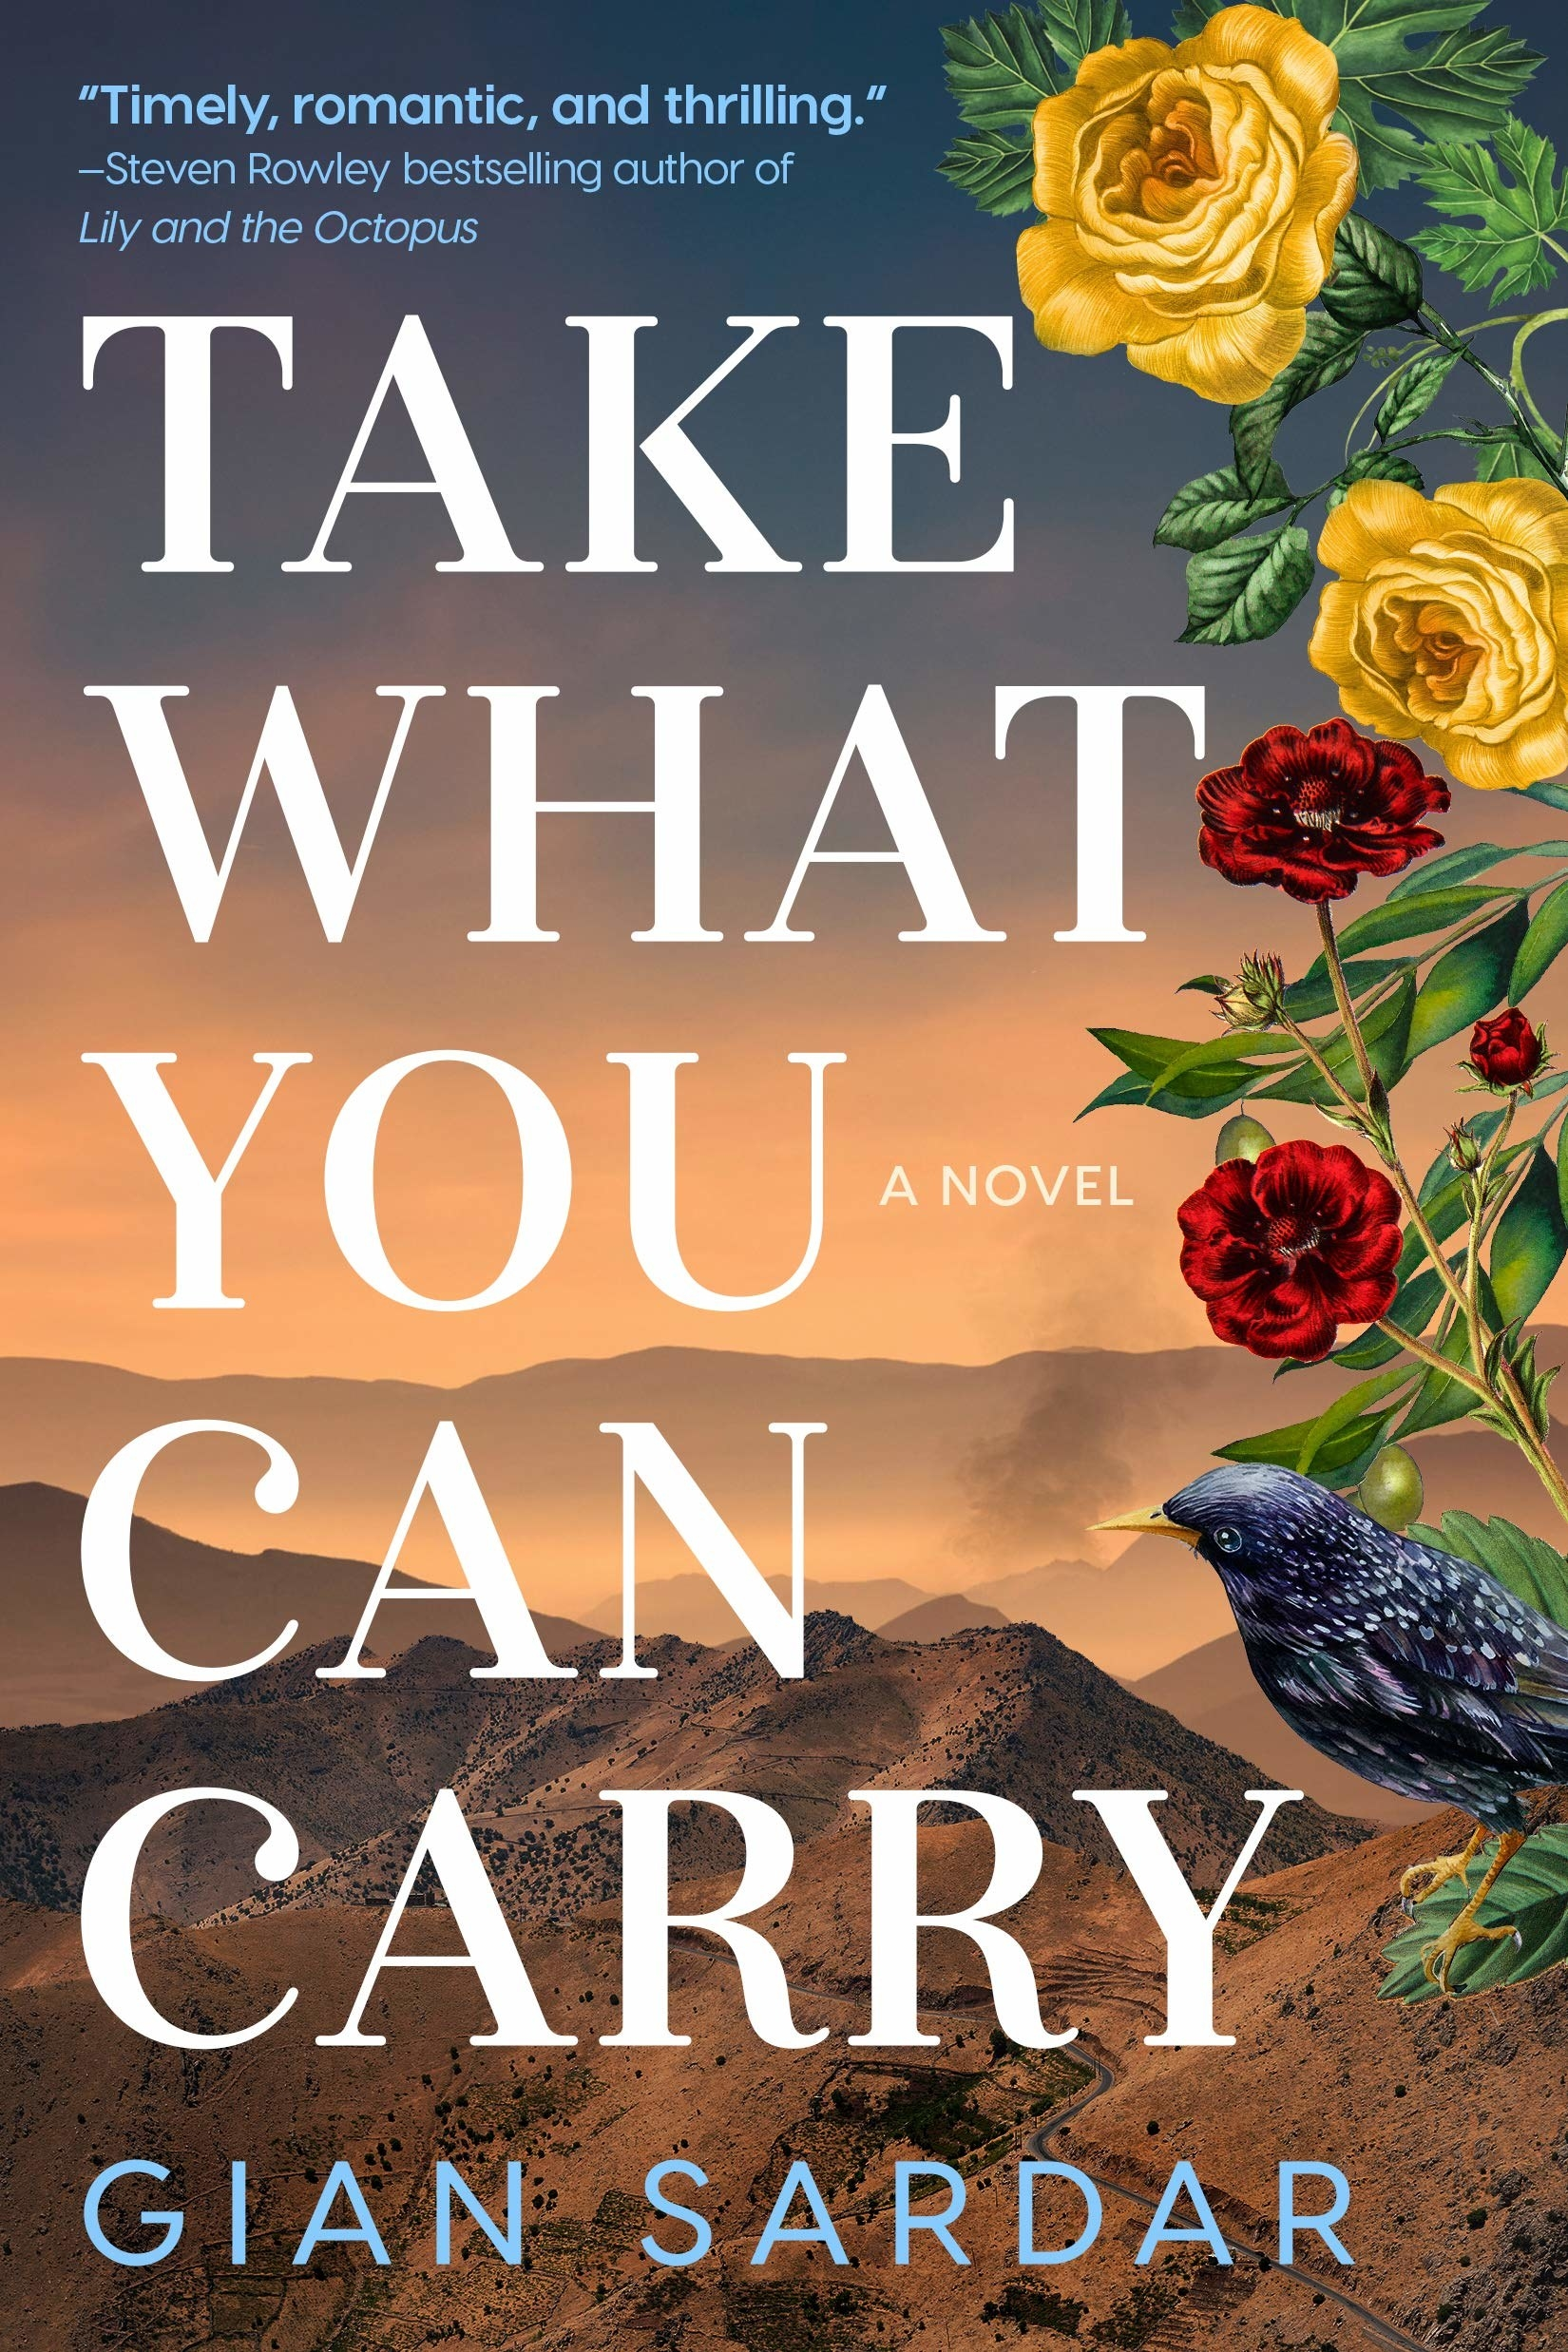 cover of the book with a valley-like landscape, flowers, and a black bird